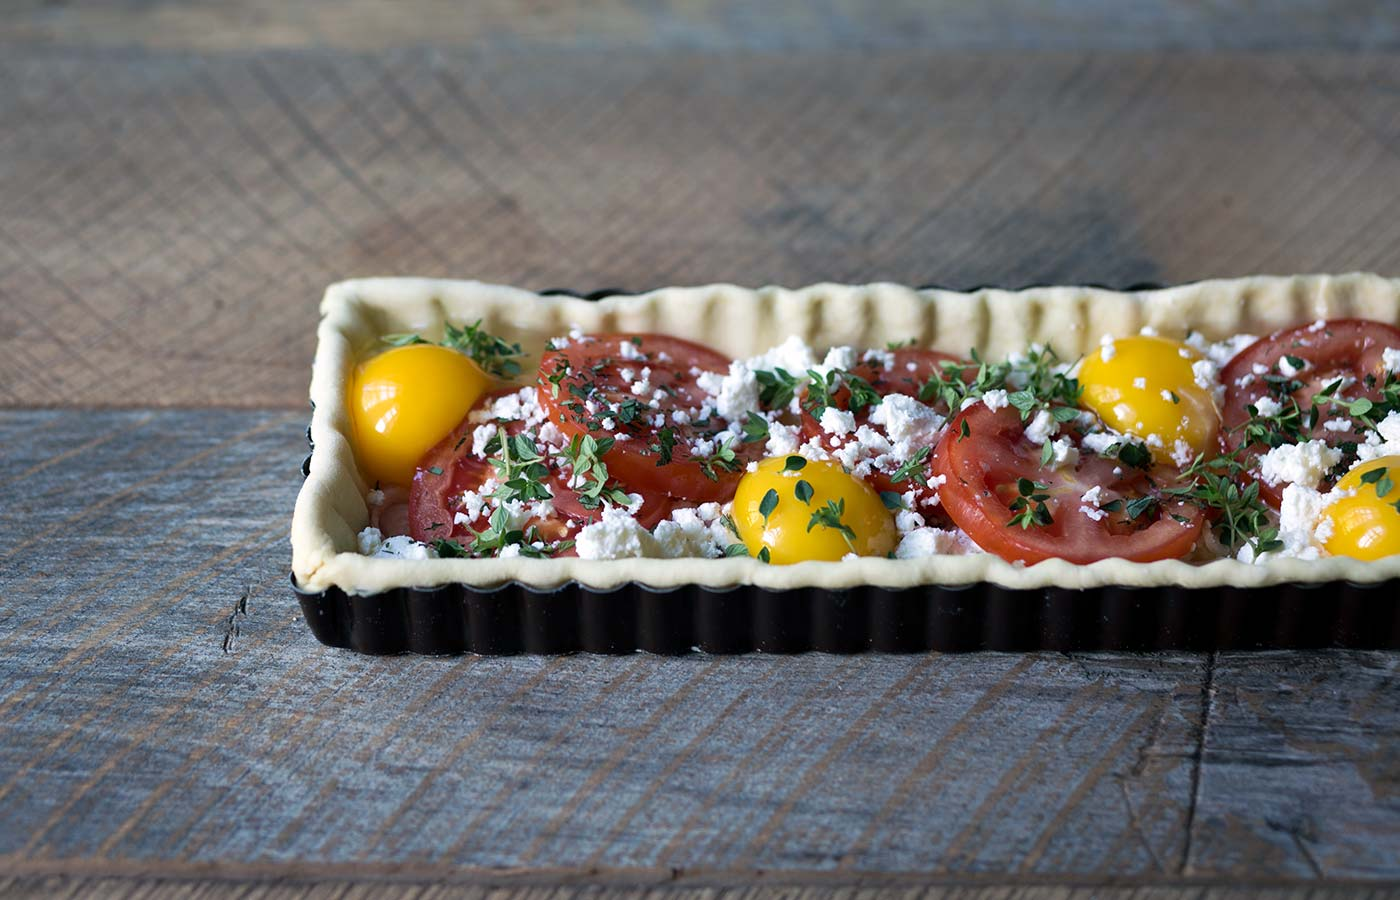 This Tomato Feta Egg Tart is perfect as an appetizer, side dish, or even for breakfast. It's beautiful and incredibly delicious. SavorySimple.net